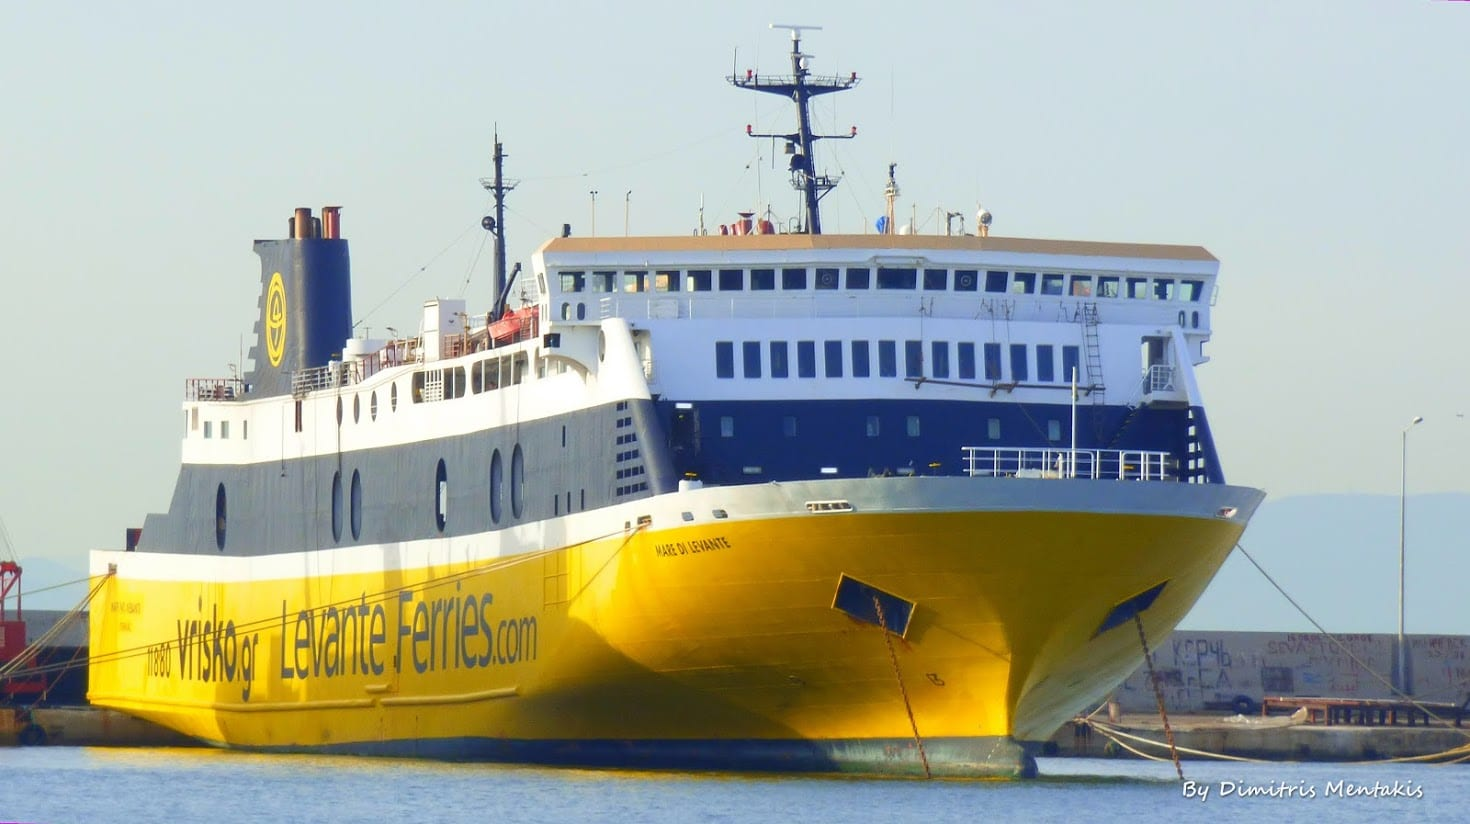 Levante Ferries in Greece